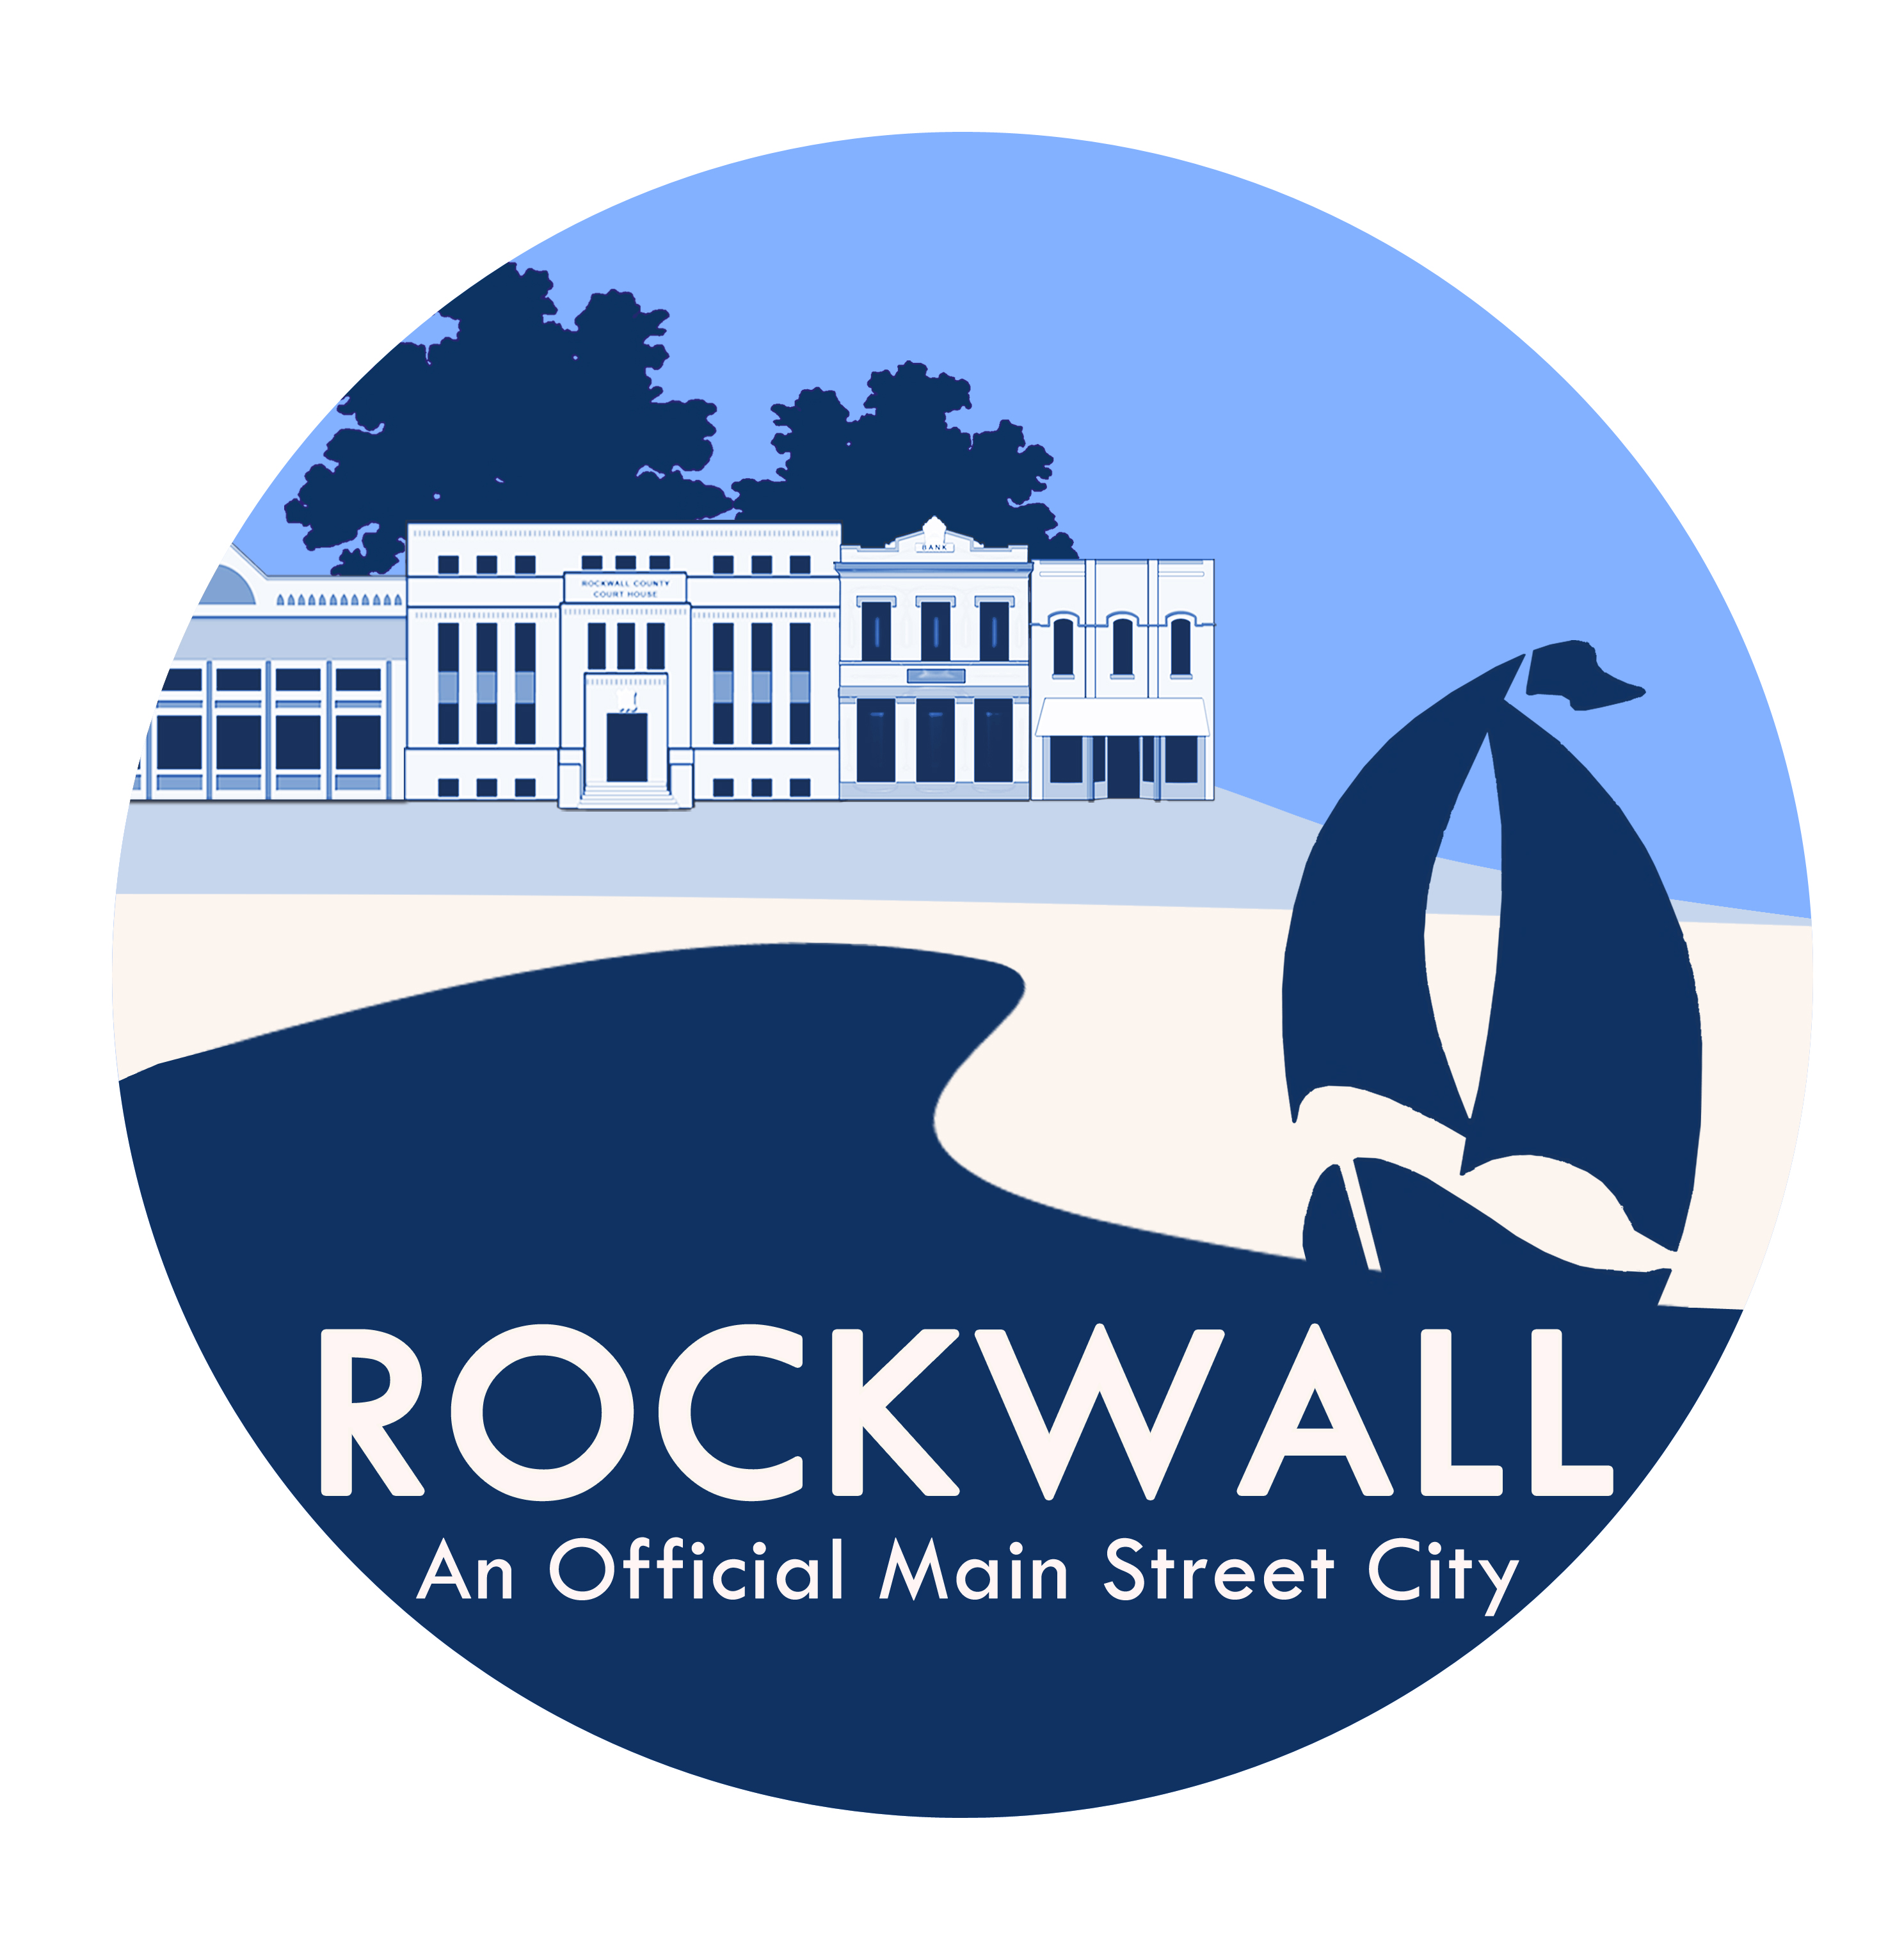 Rockwall Main Street Logo - 2010